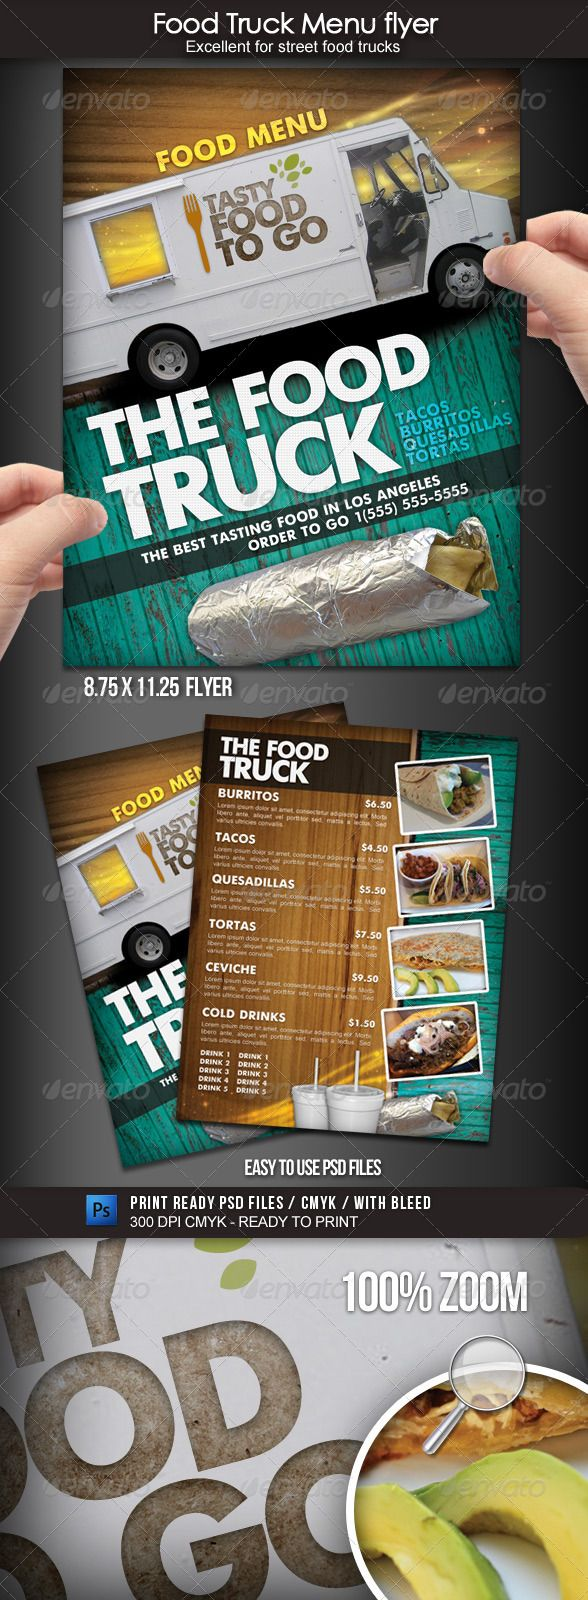 Food Truck Menu Flyer - Food Menus Print Templates